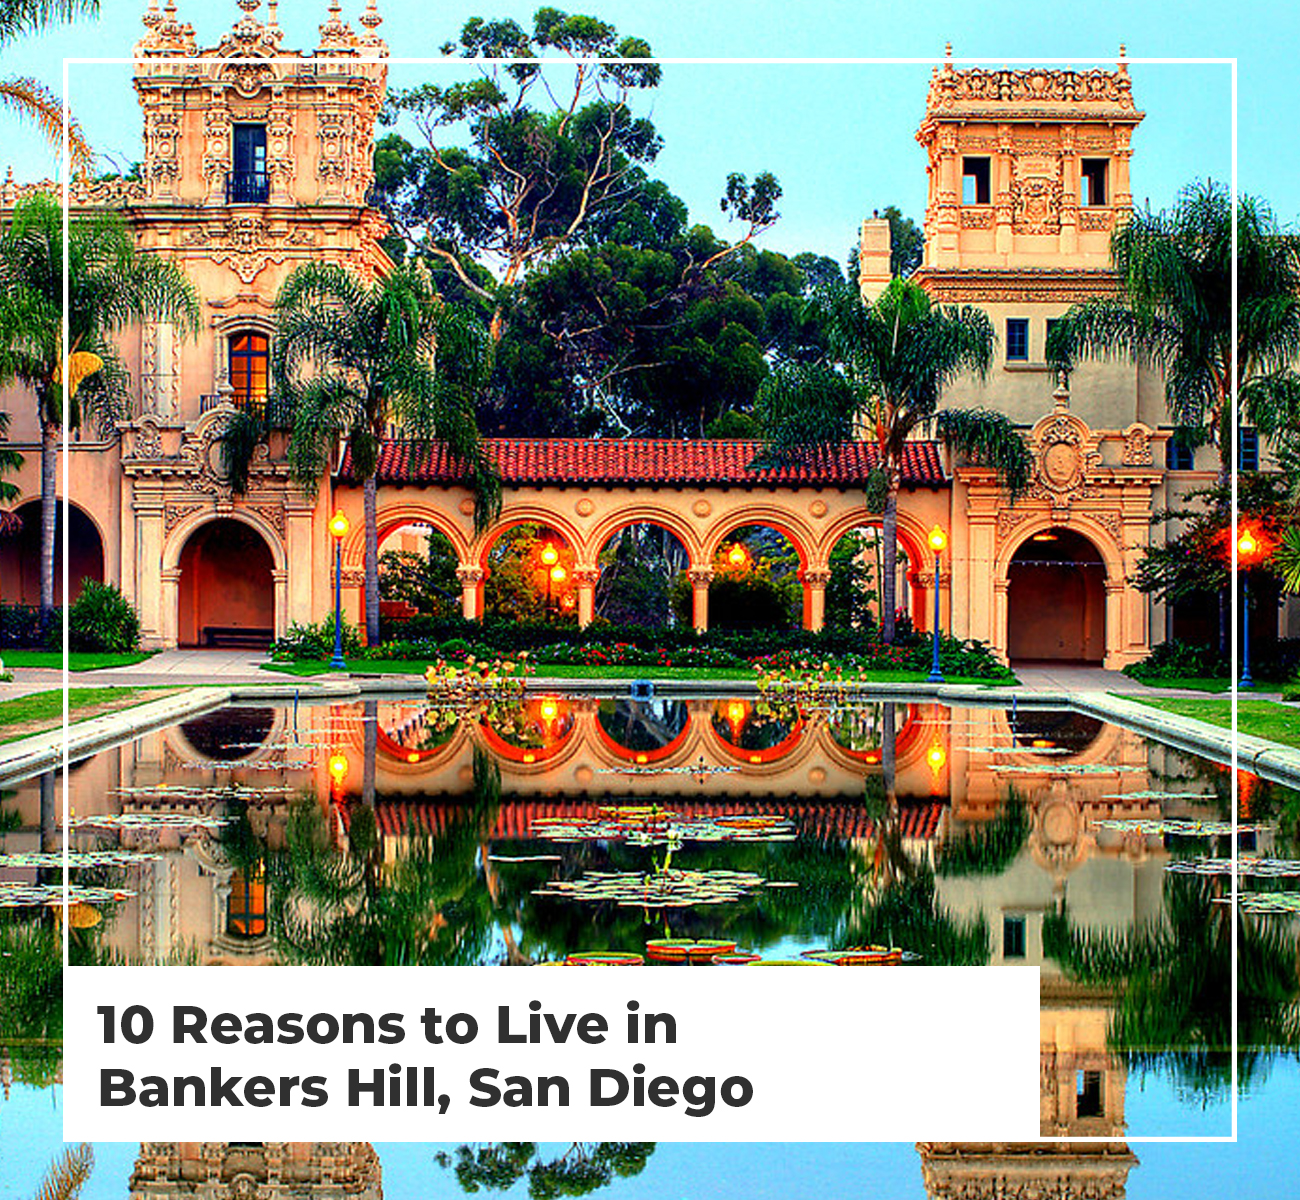 10 Reasons to Live in Bankers Hill, San Diego